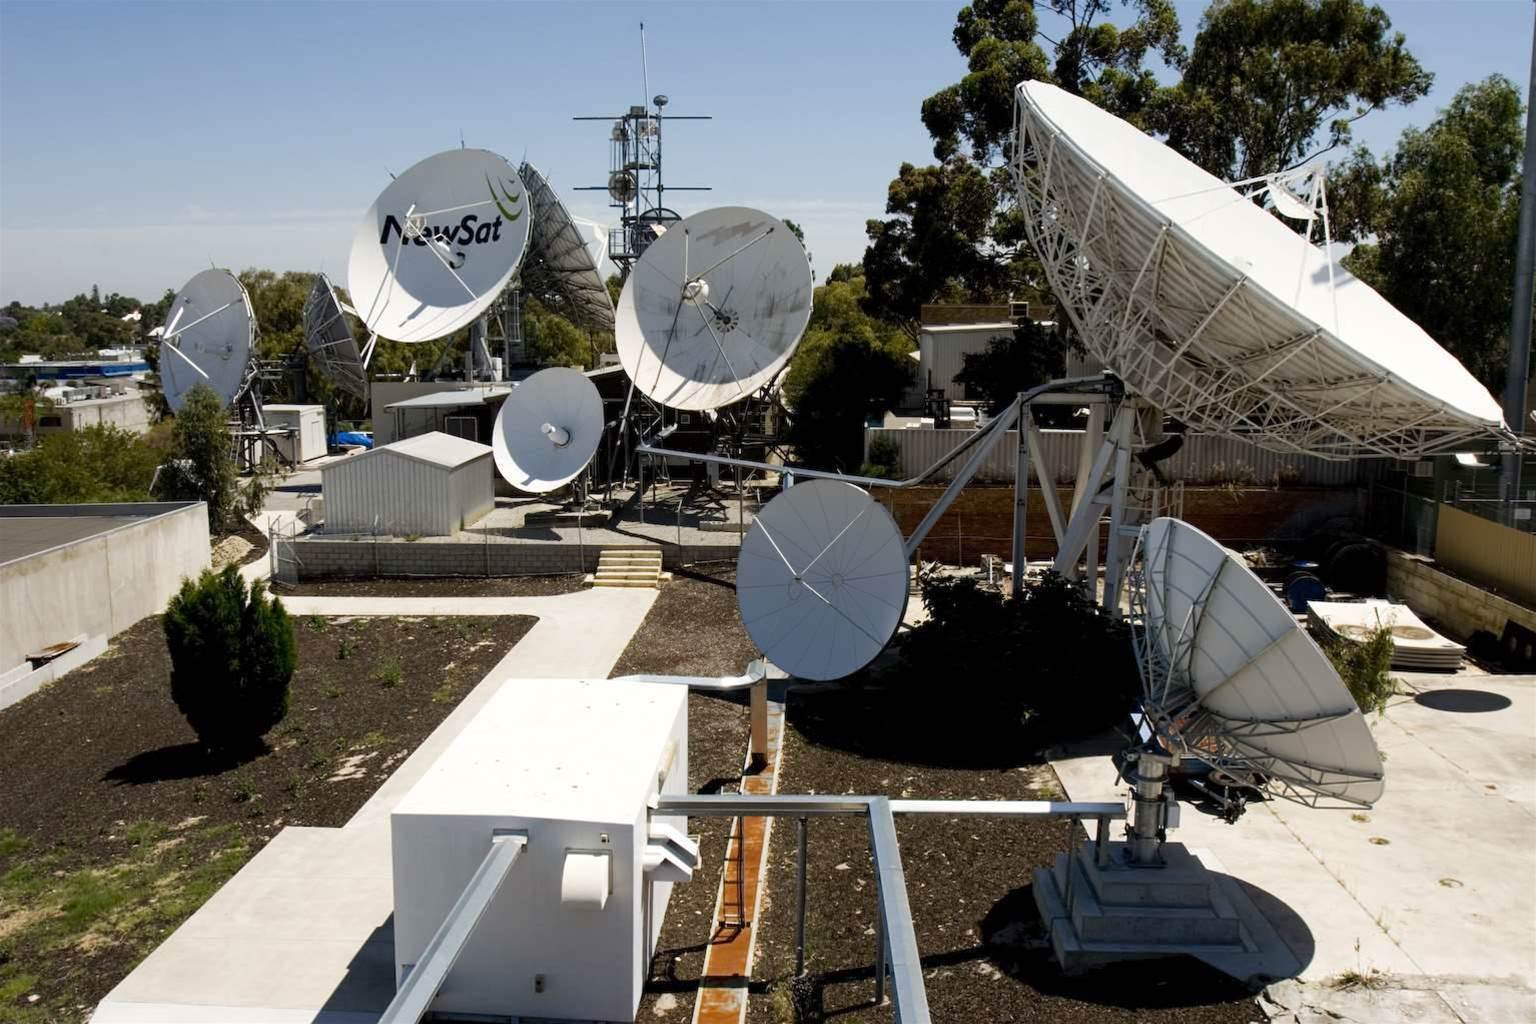 NewSat submits to regional review